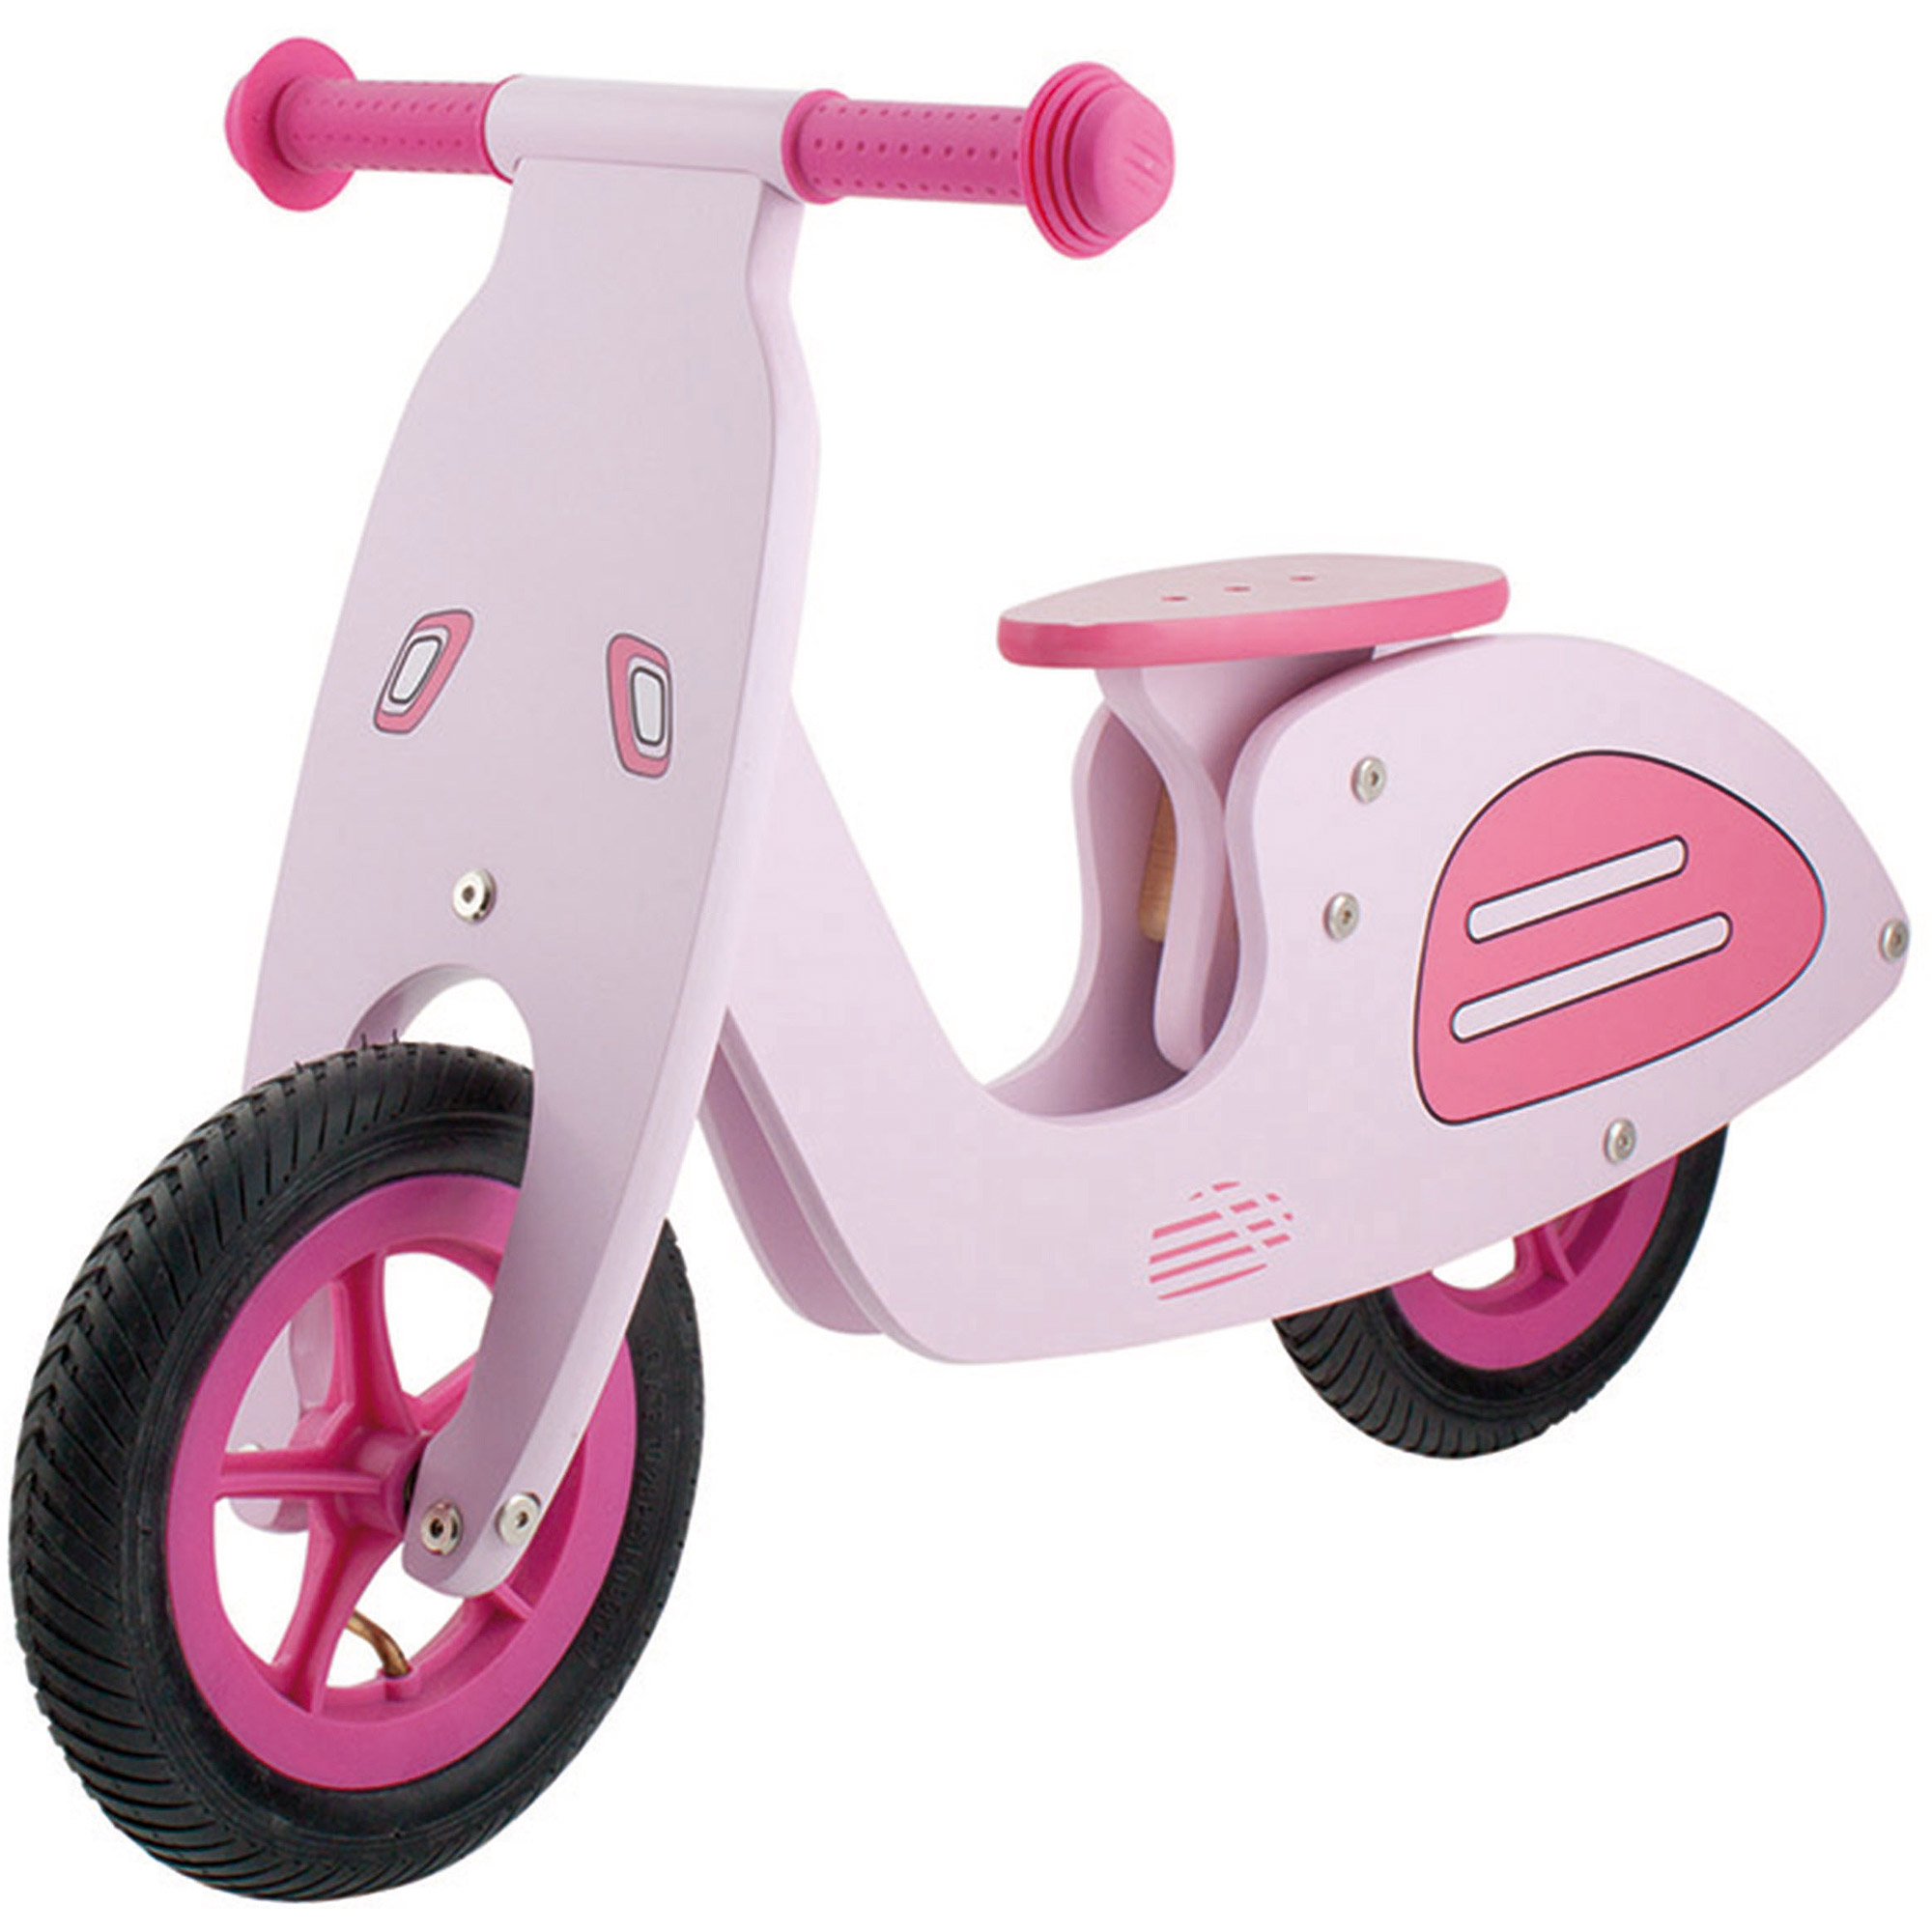 M-Wave Vespa-Roller Running/Balance Bike